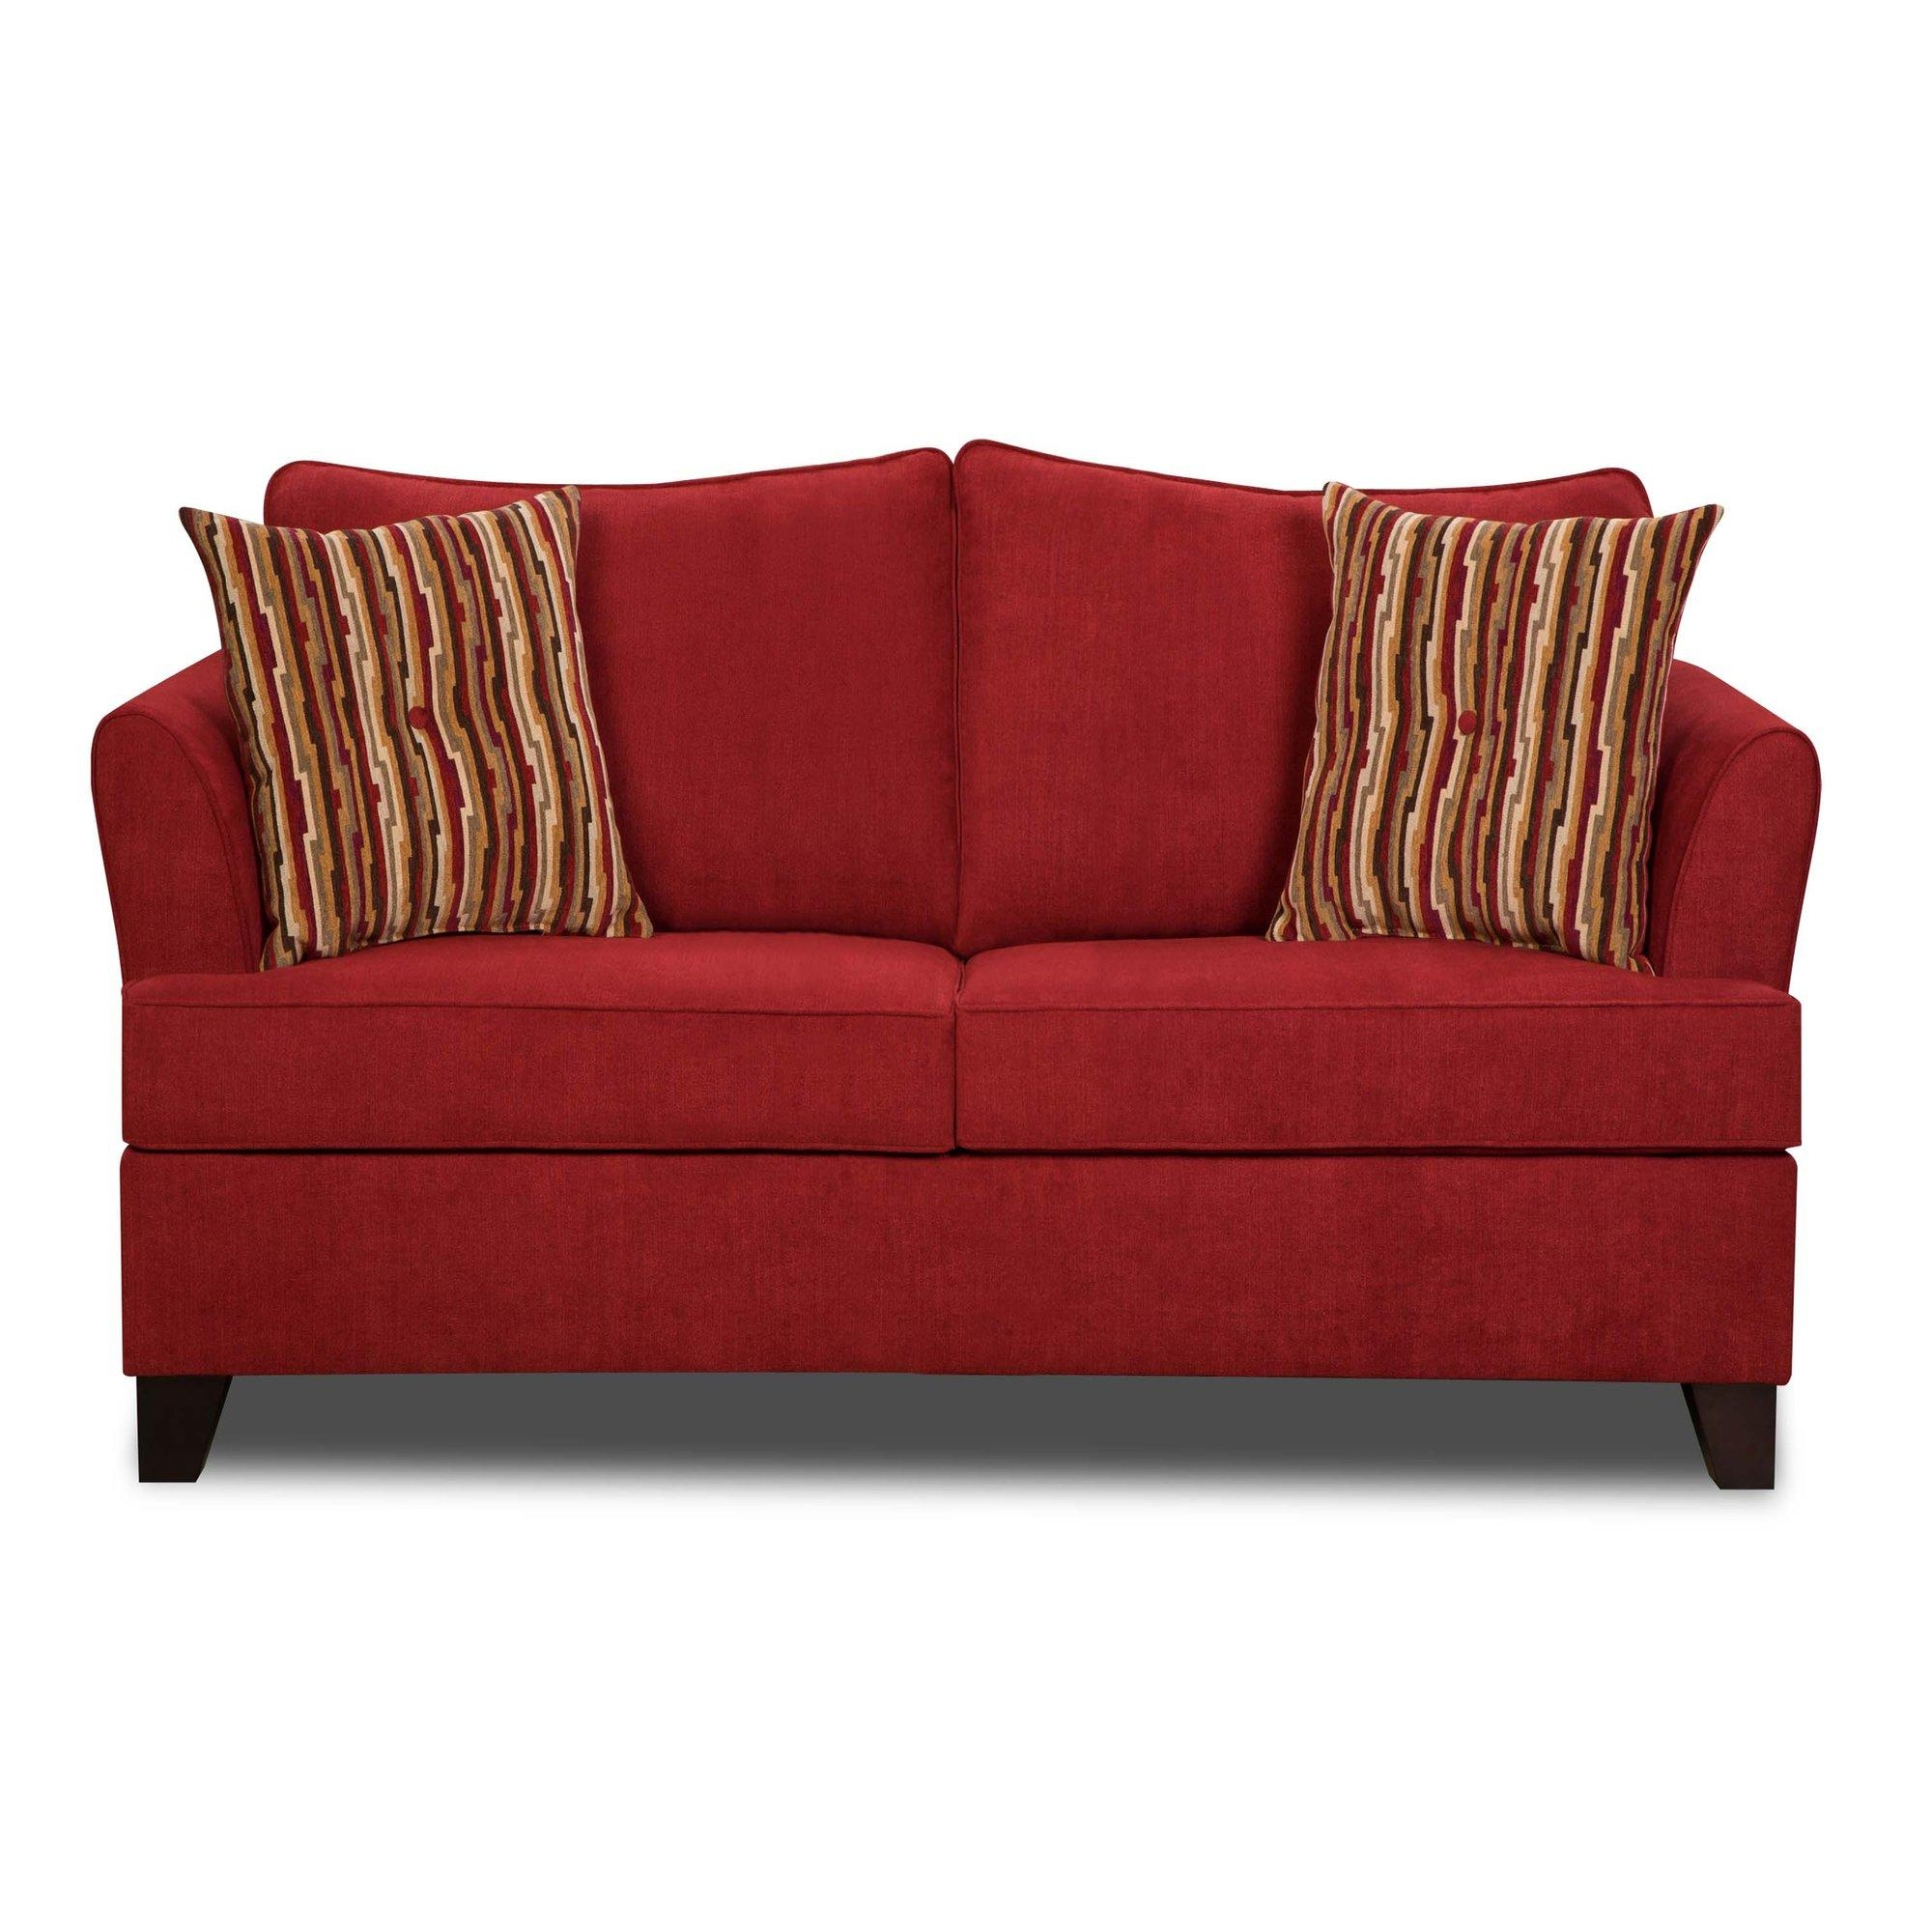 Furniture: Using Comfy Simmons Sleeper Sofa For Home Furniture In Red Sleeper Sofa (Image 7 of 20)